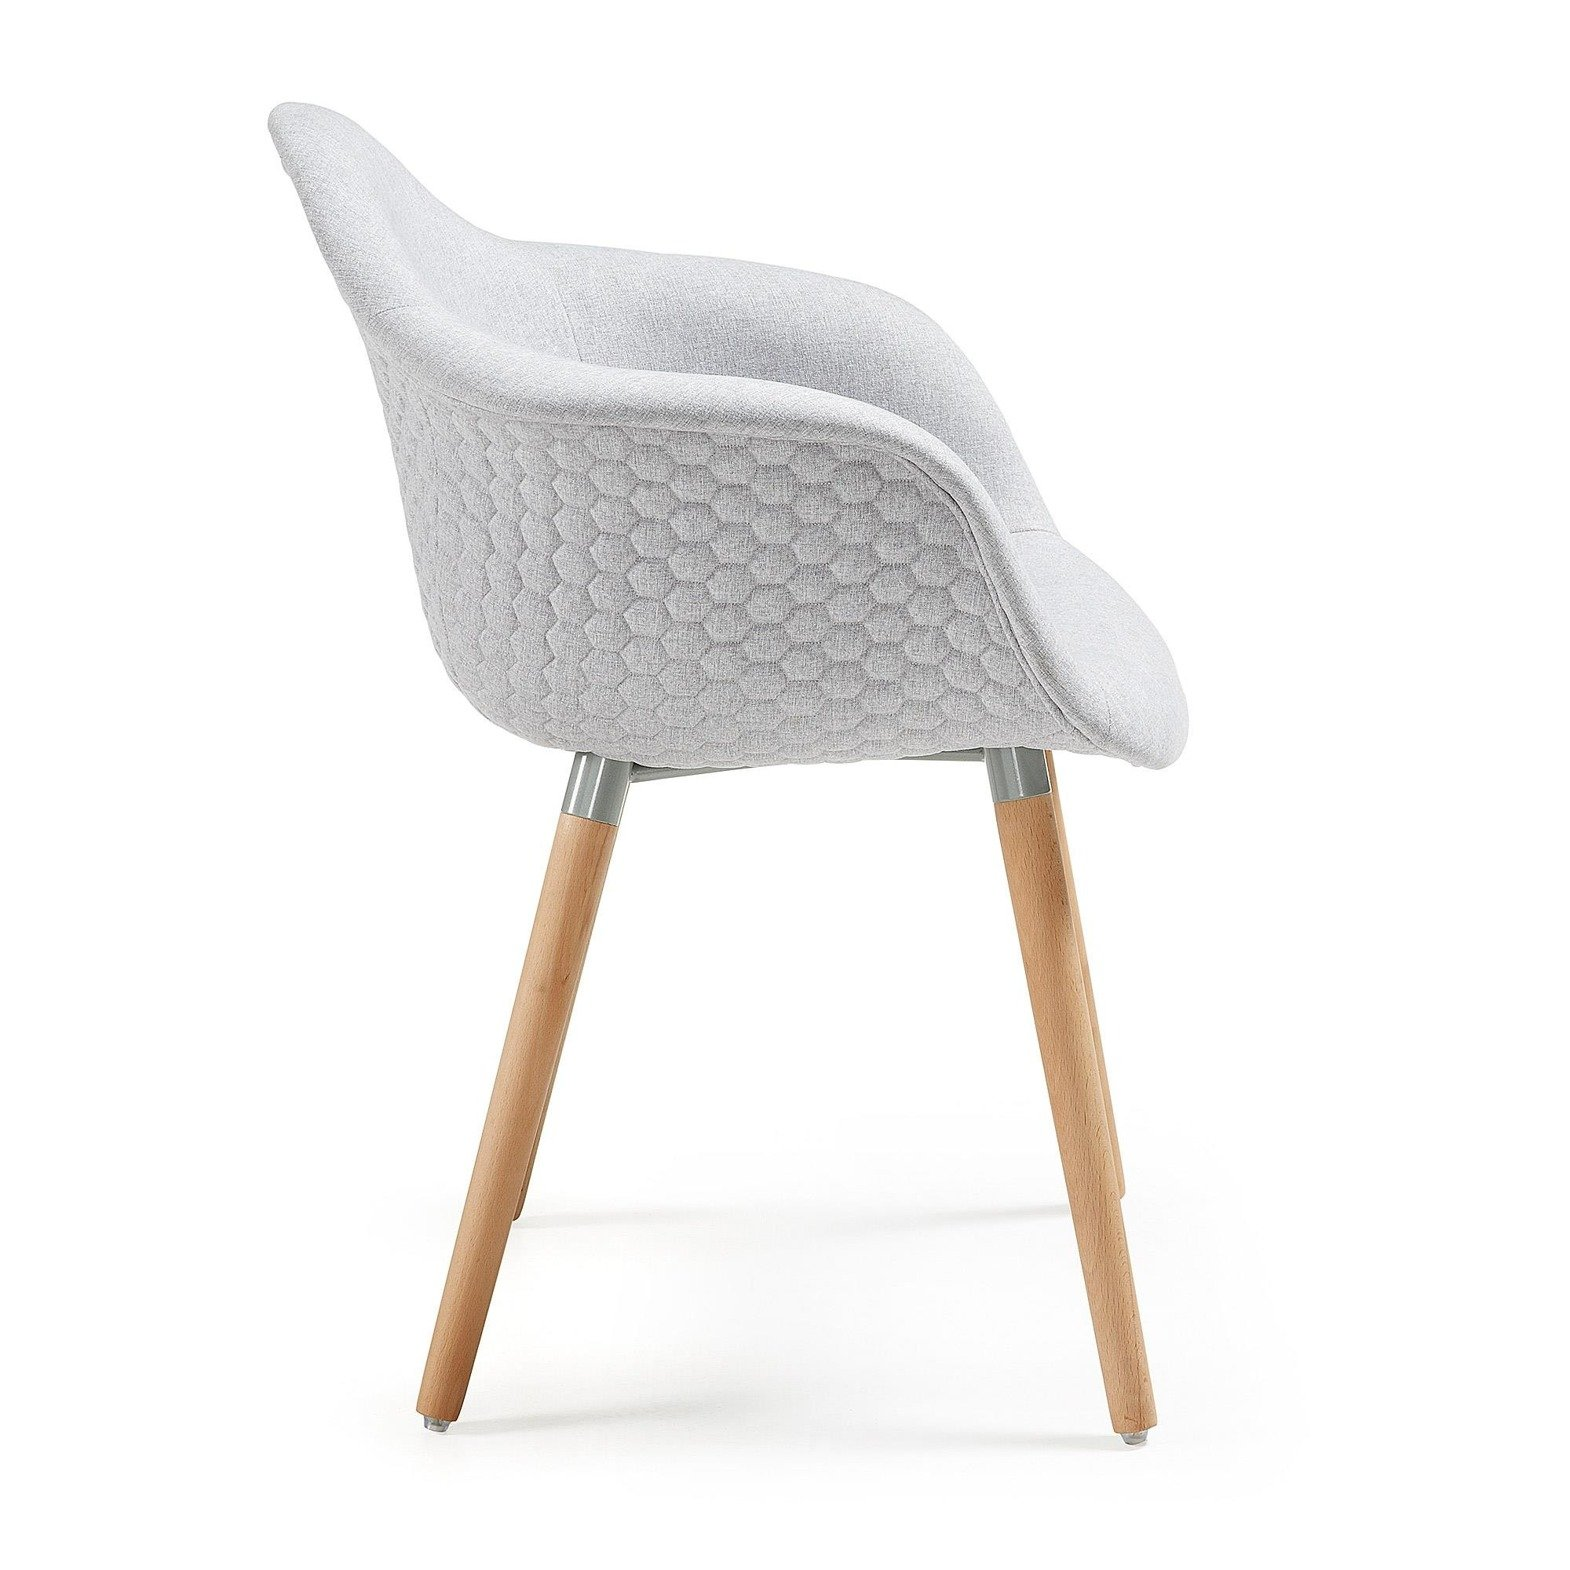 TOME Armchair natural wood, fabric, light gray